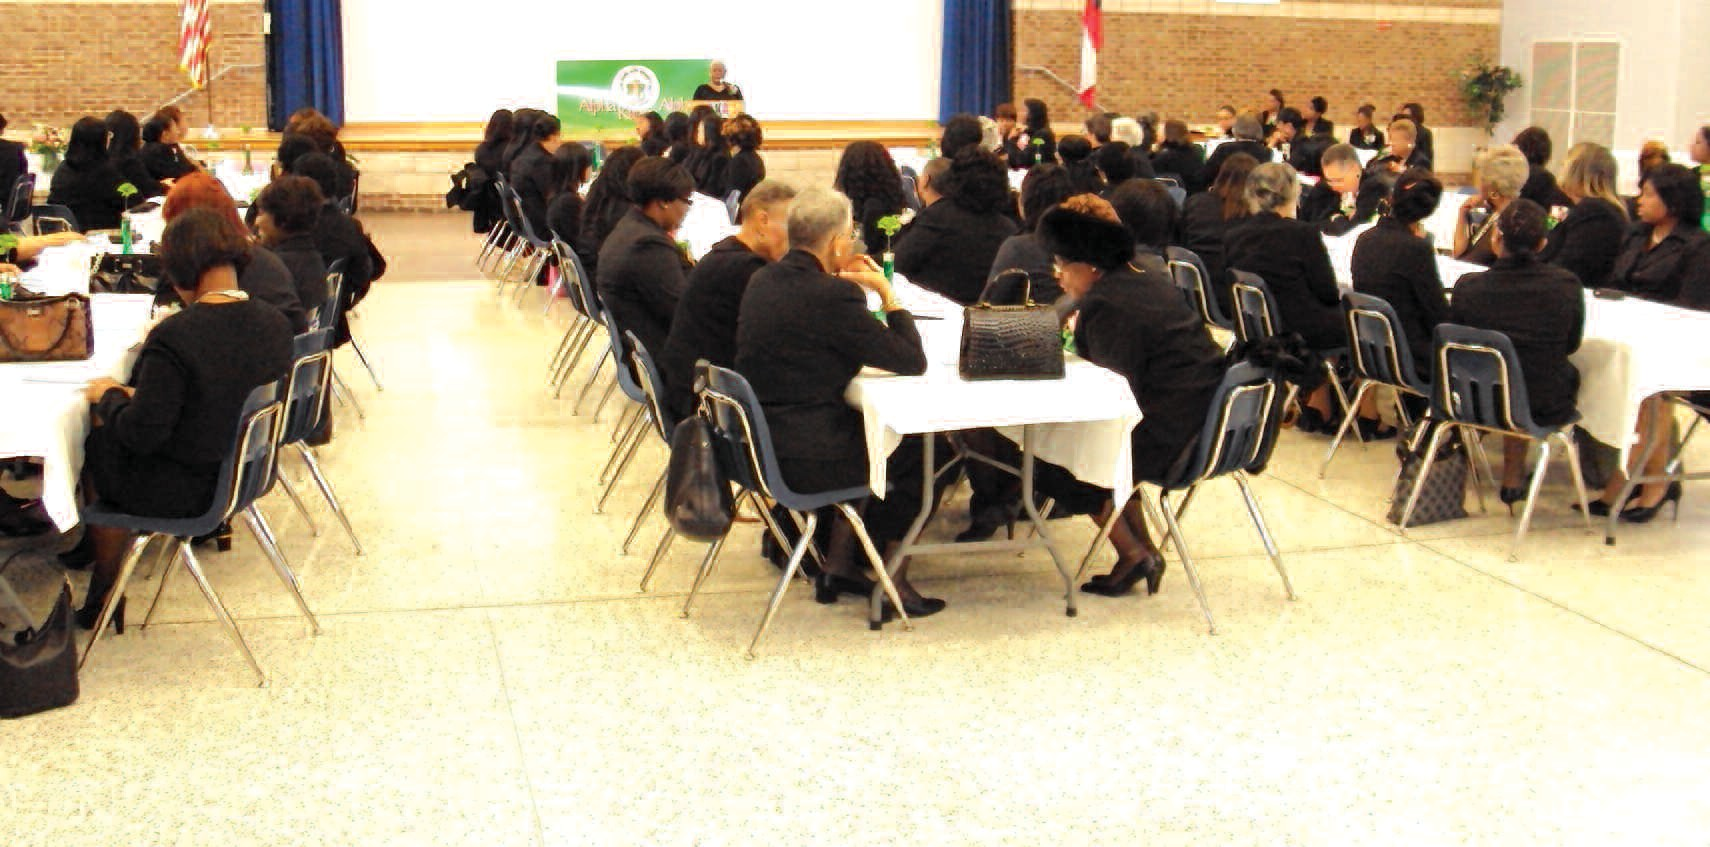 Members of Alpha Kappa Alpha Sorority Inc. are pictured during Founder's Day Celebration